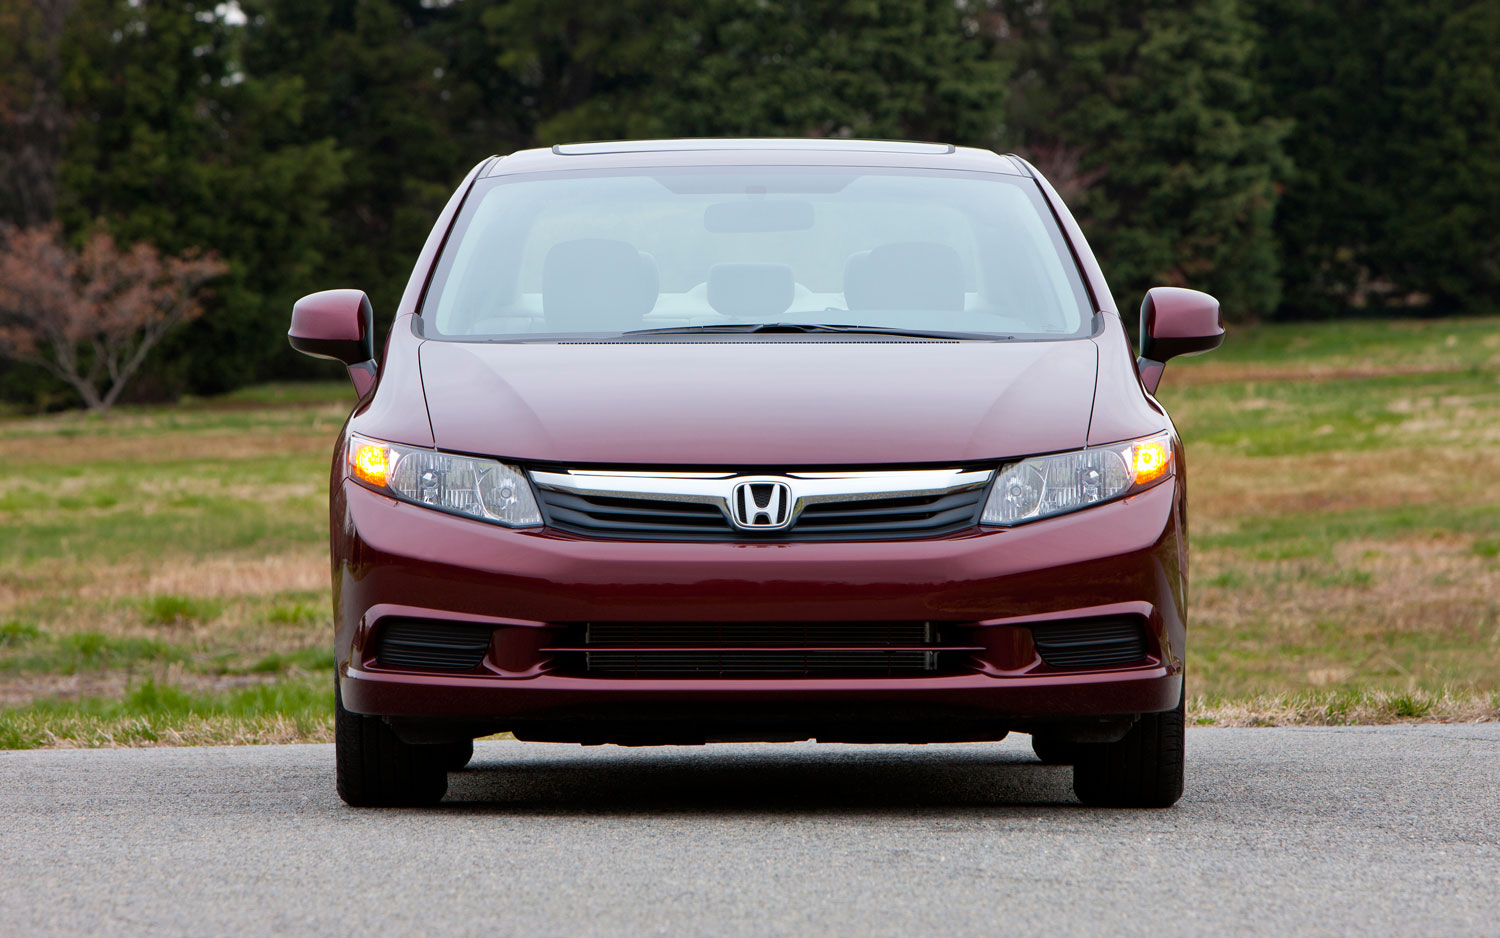 Hybrid Stickers Expire But Honda Civic Gx Still Eligible For 2011 Si Engine Diagram Jake Holmes